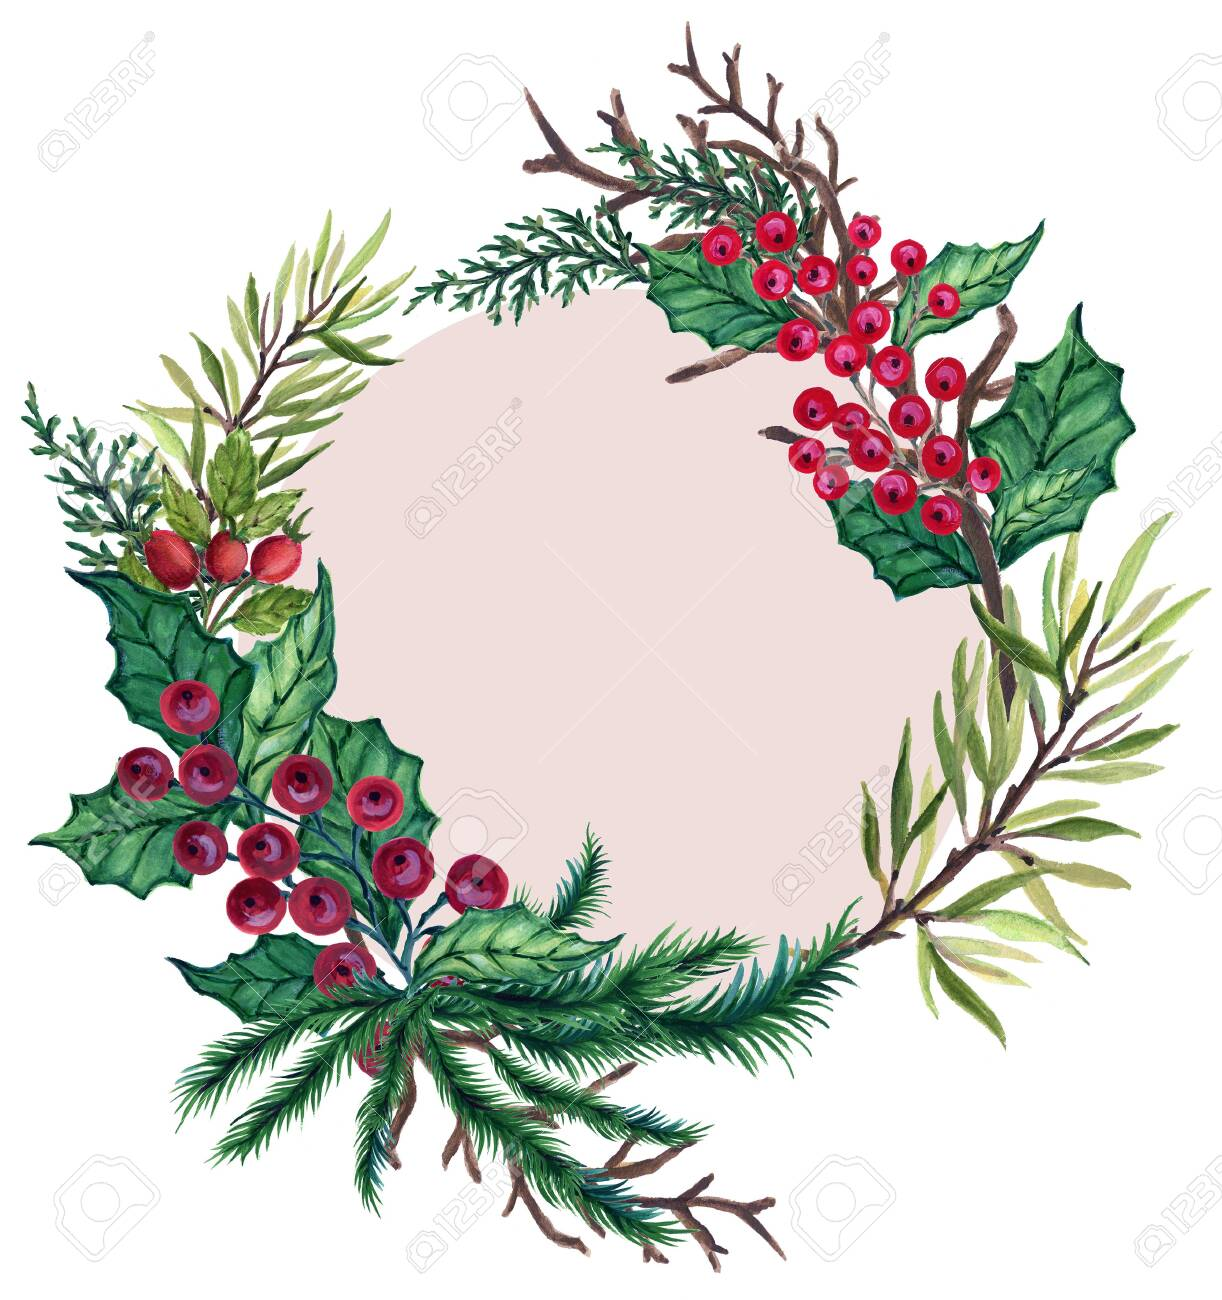 Watercolor Gouache Vintage Retro Hand Painted Christmas Wreath Stock Photo Picture And Royalty Free Image Image 118981266